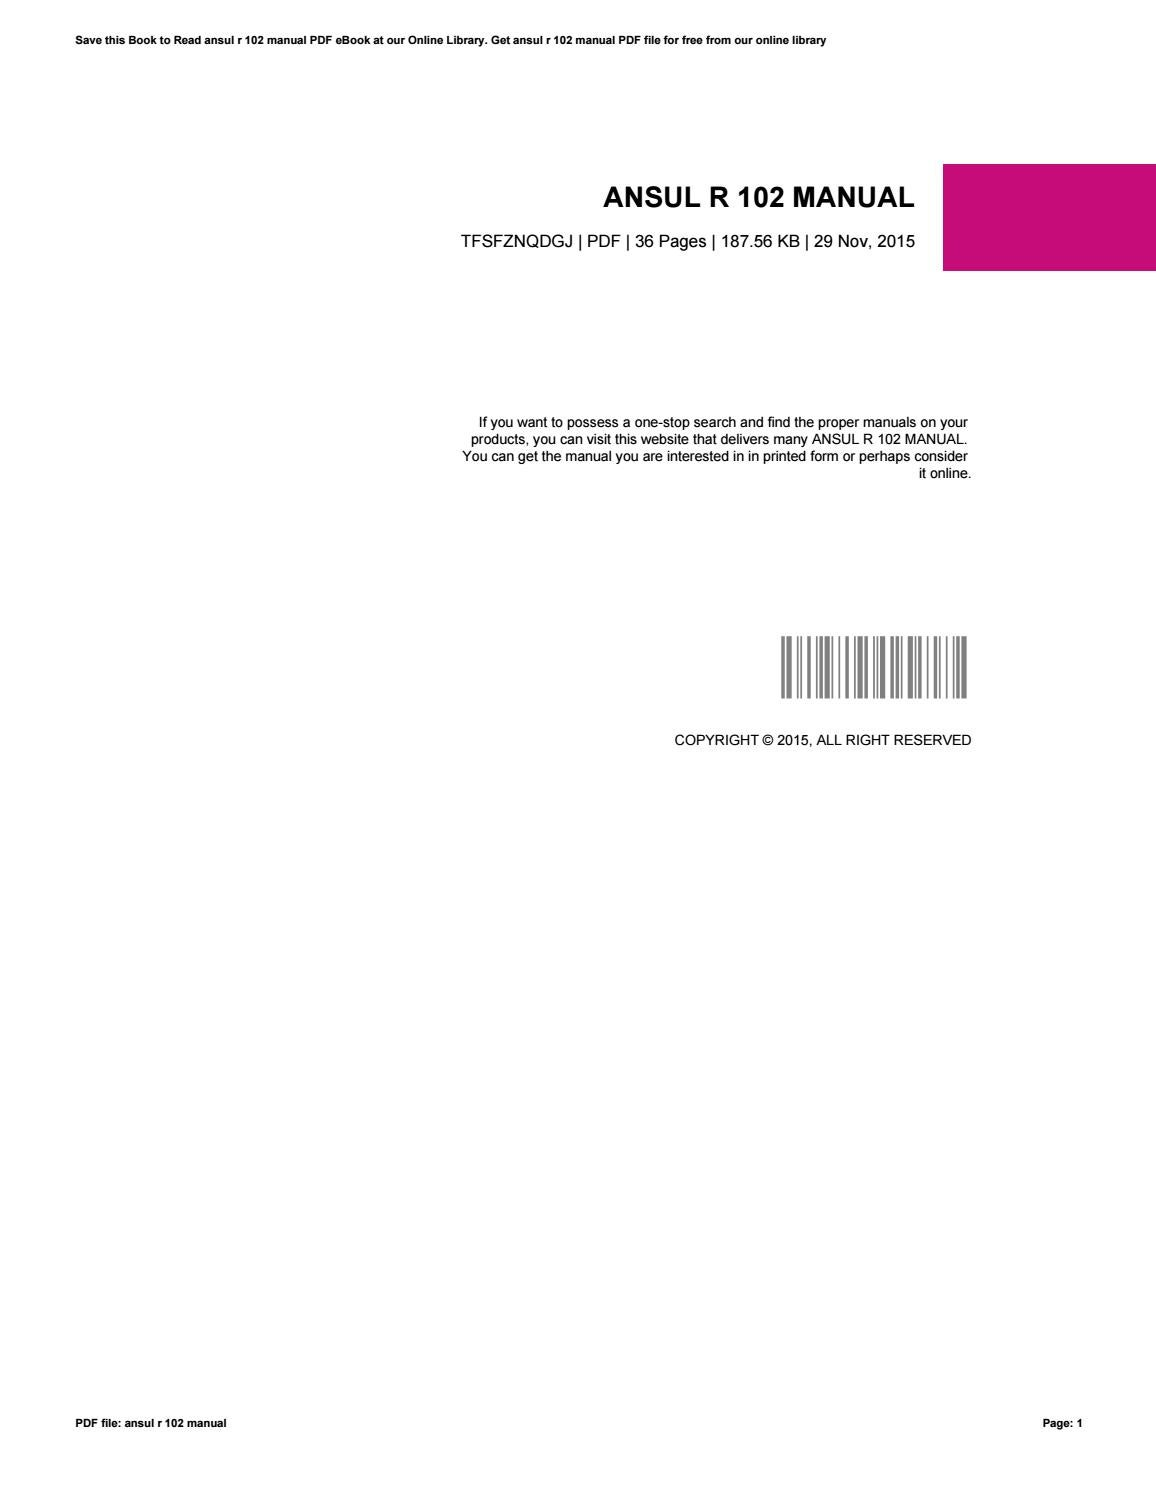 Famous Ansul R 102 Wiring Diagram Crest - The Best Electrical ...